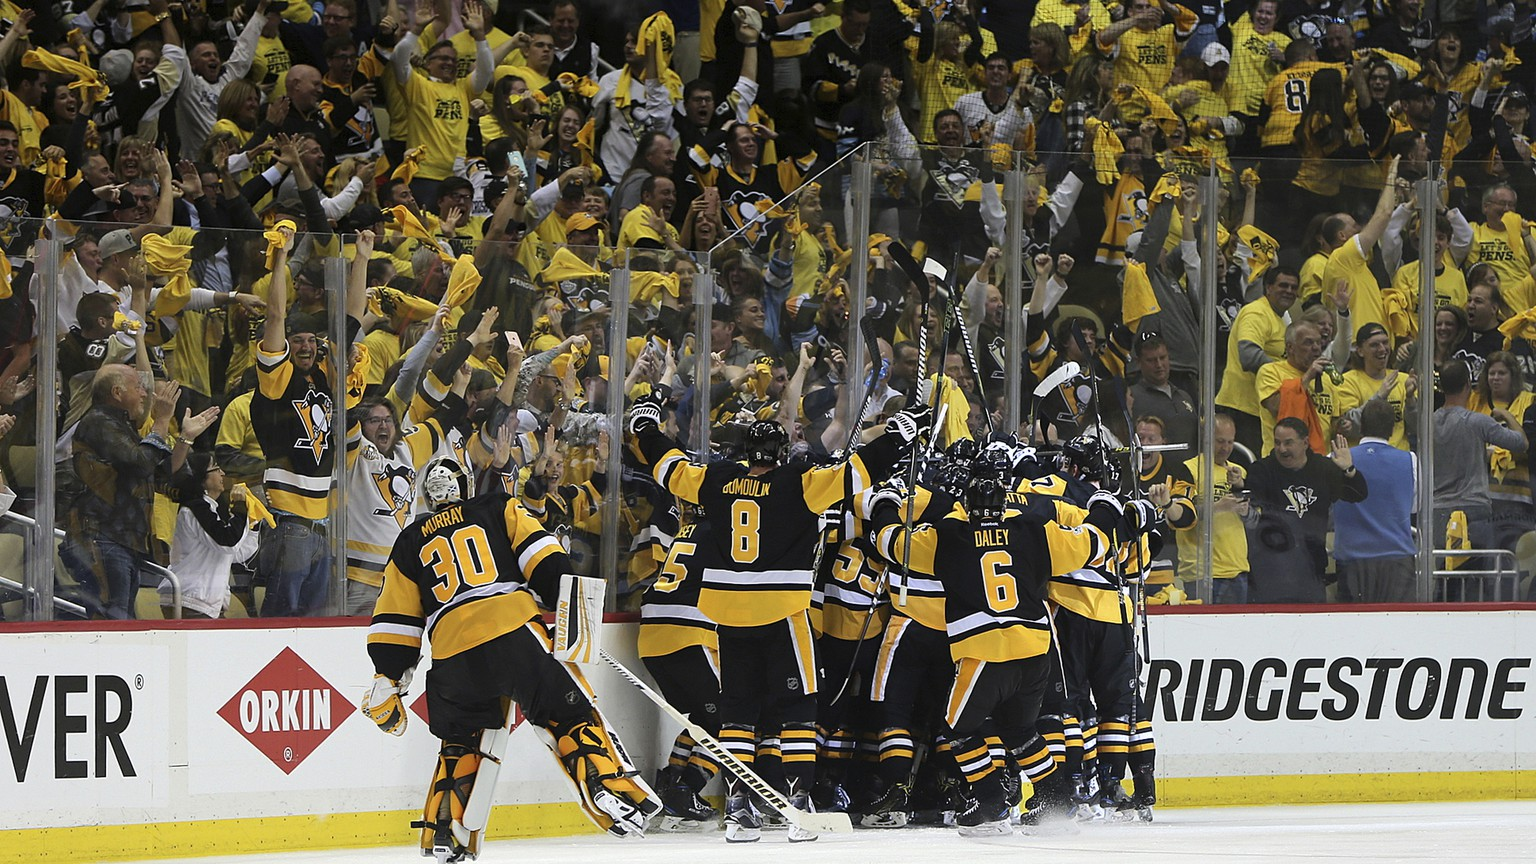 Pittsburgh Penguins players and fans celebrate as the Penguins' Chris Kunitz scores a game winning goal during the second overtime period of Game 7 in the NHL hockey Stanley Cup Eastern Conference finals against the Ottawa Senators, Thursday, May 25, 2017, in Pittsburgh. The Penguins won 3-2. (AP Photo/Keith Srakocic)